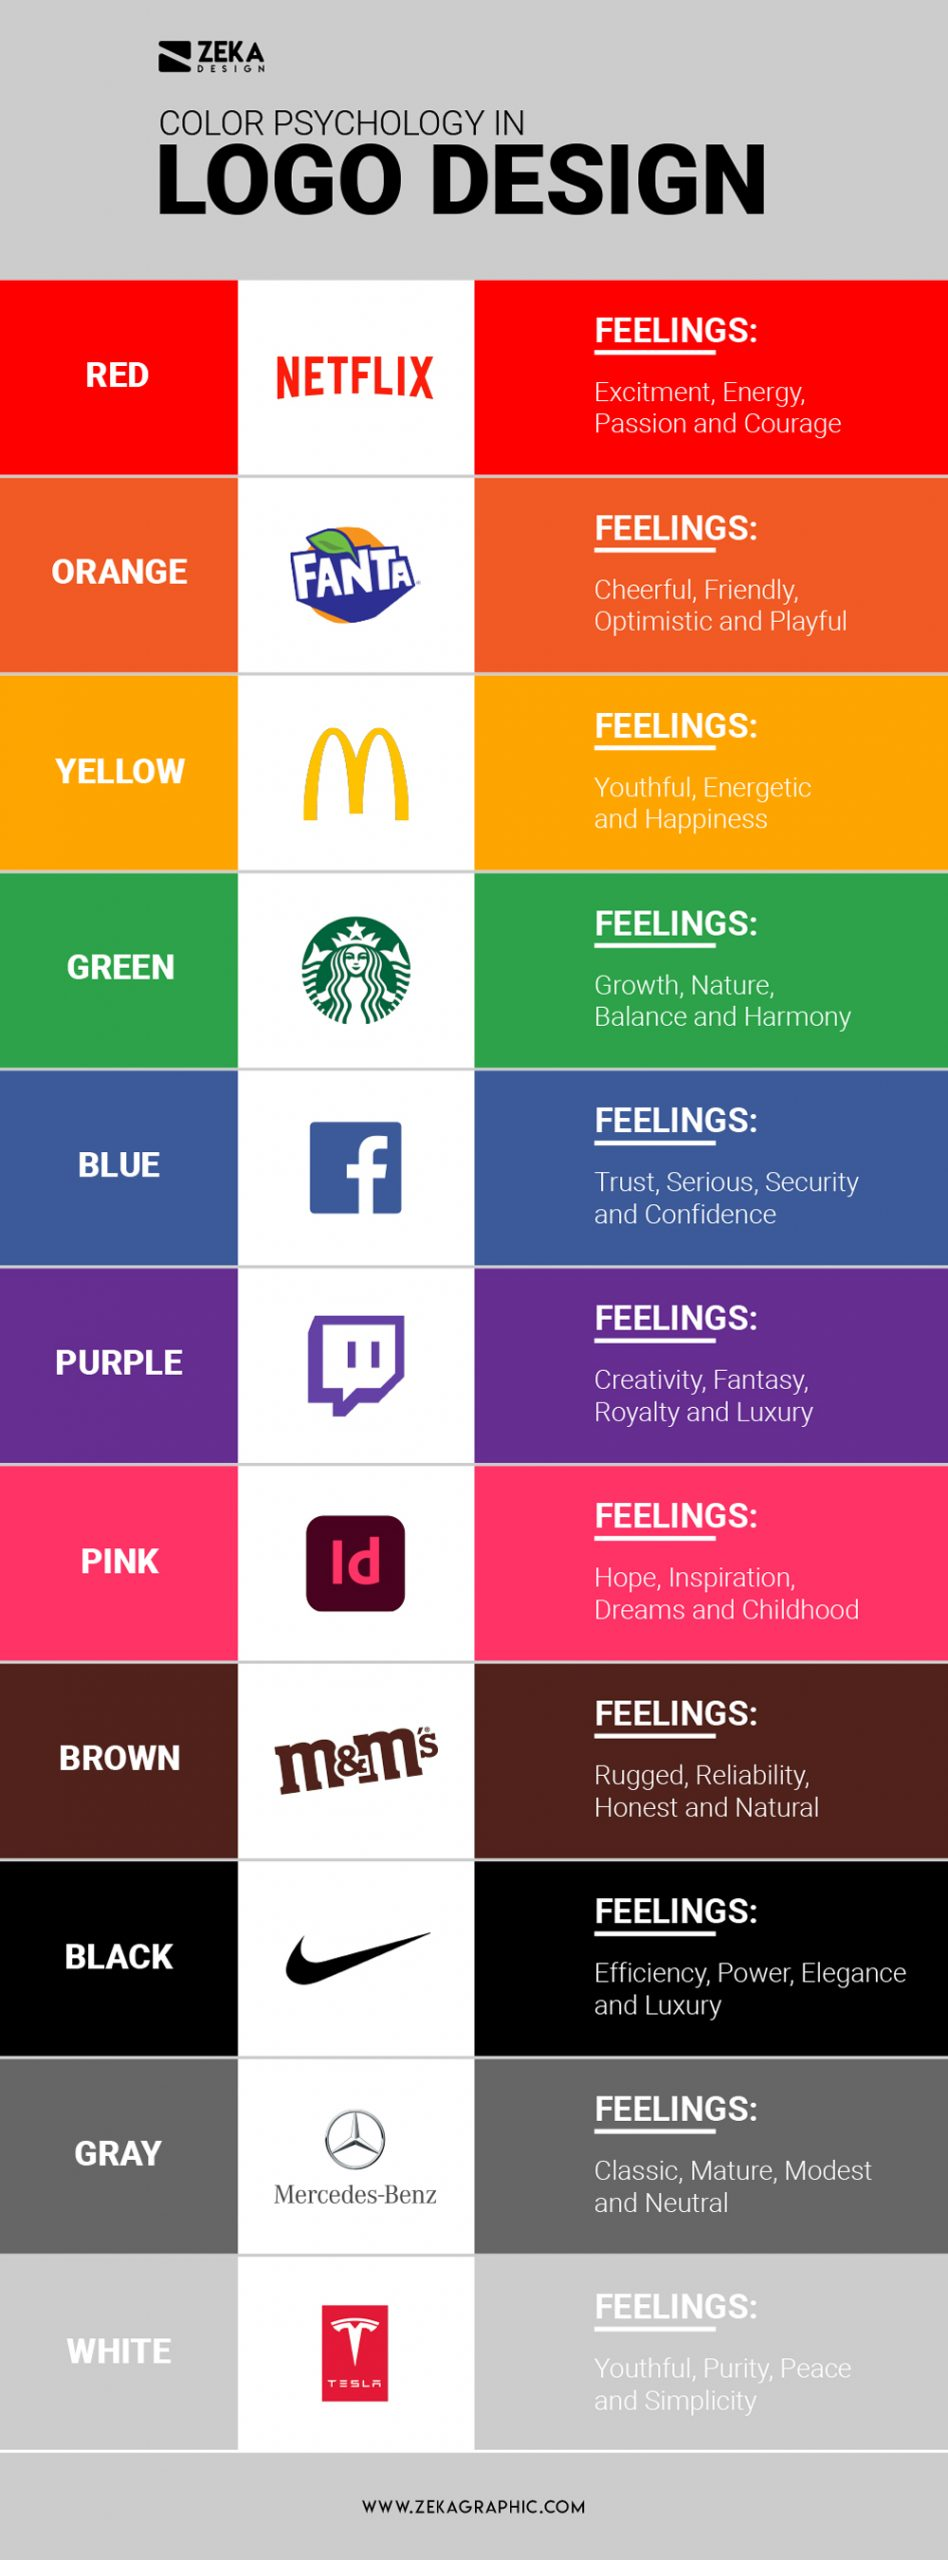 Color Psychology in Logo Design Infographic Color Meaning